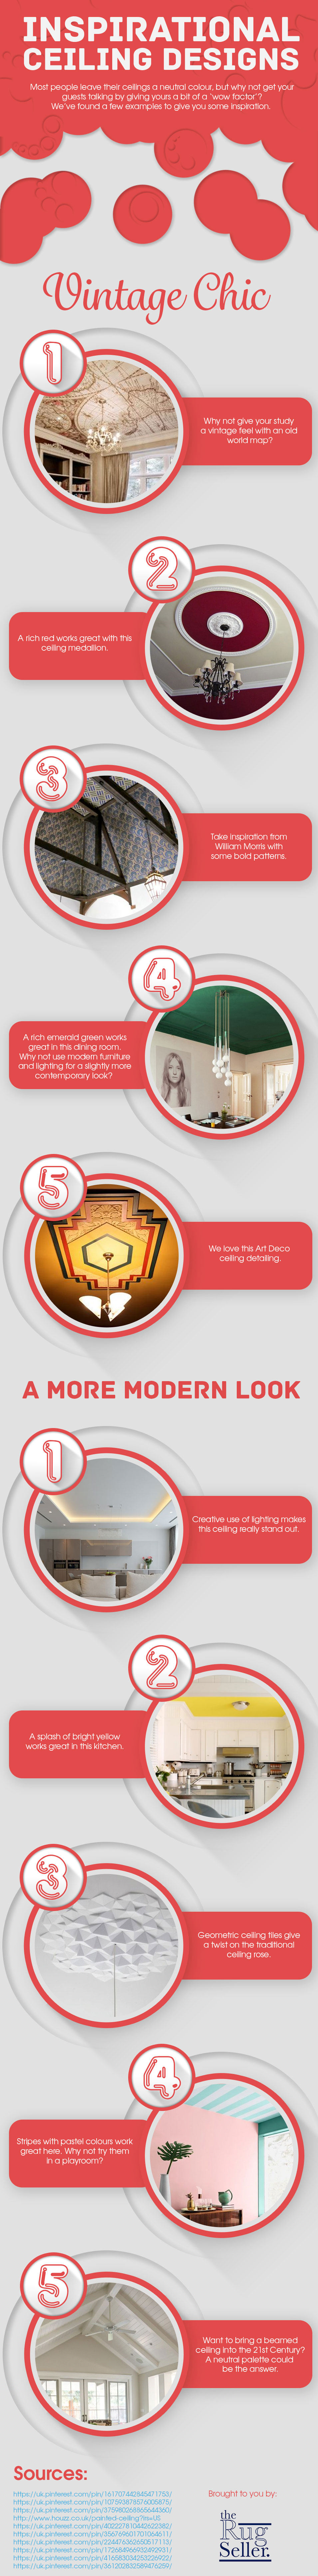 Inspirational Ceiling Designs [Infographic]